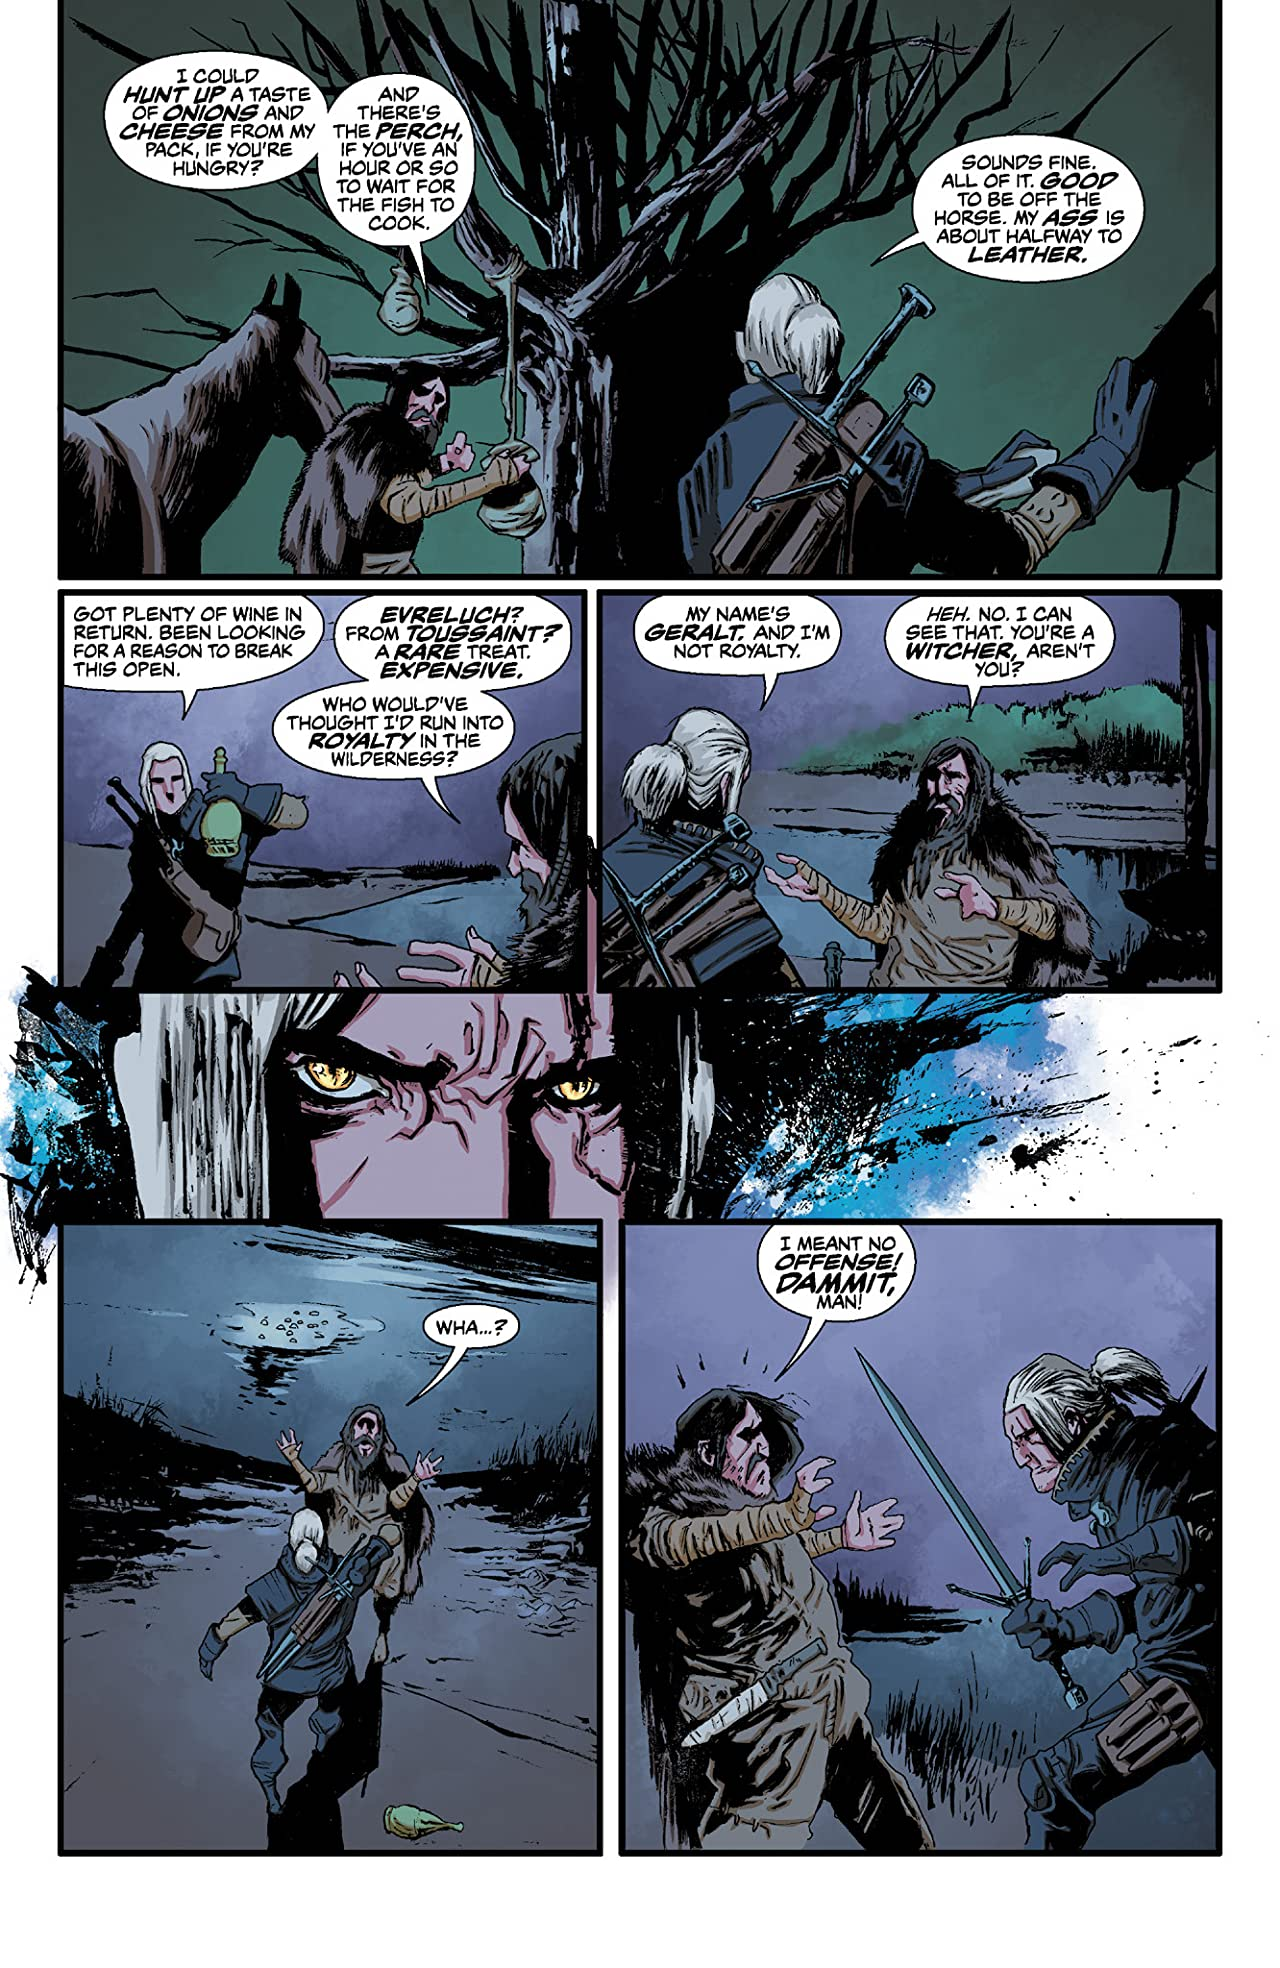 The Witcher #1